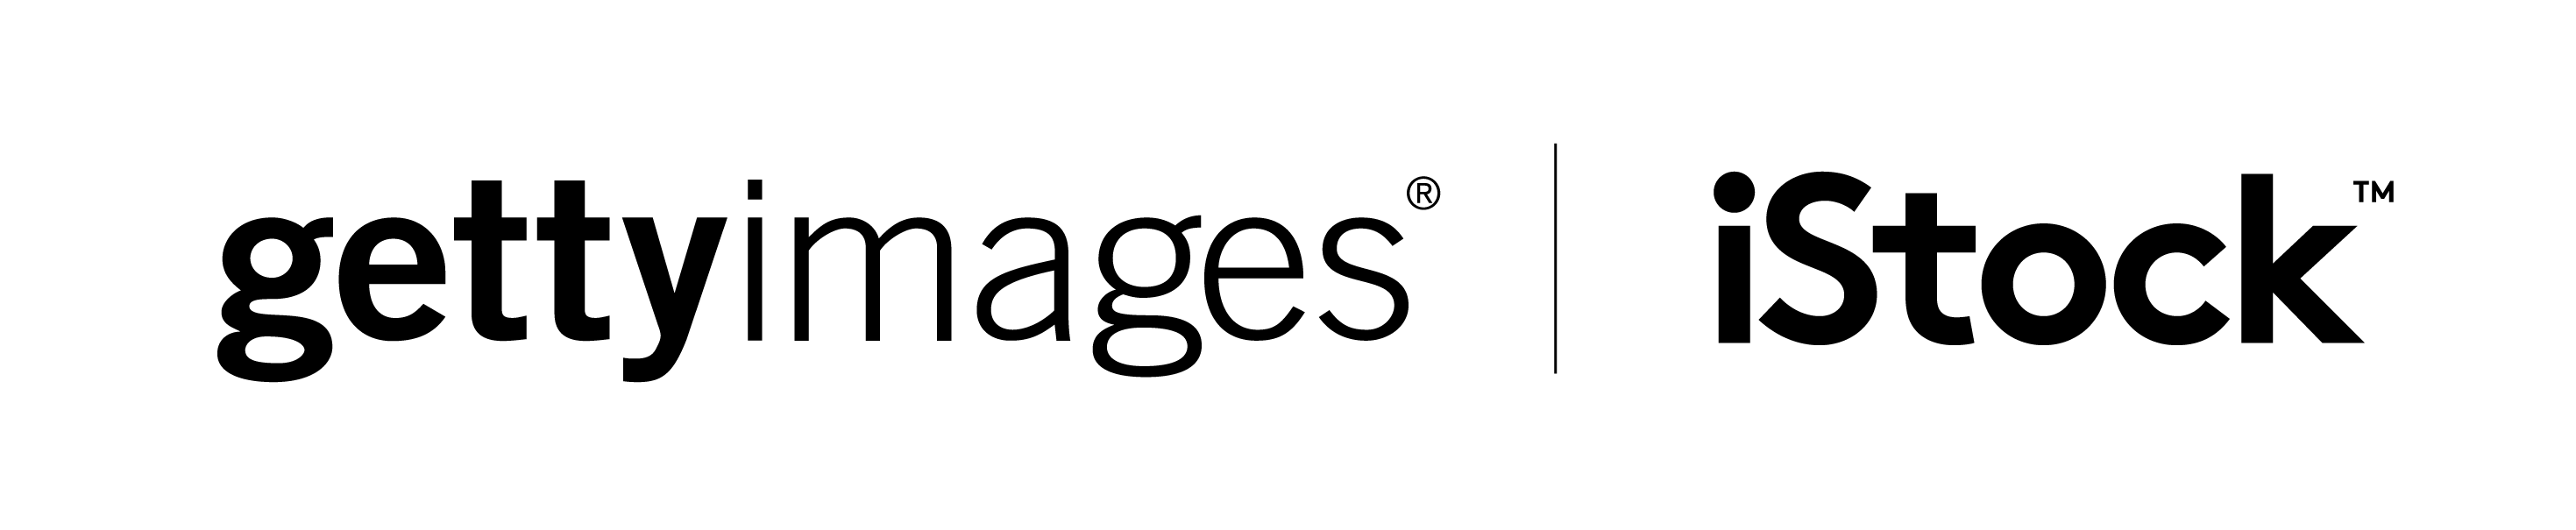 Getty Images - Moving the world with images.